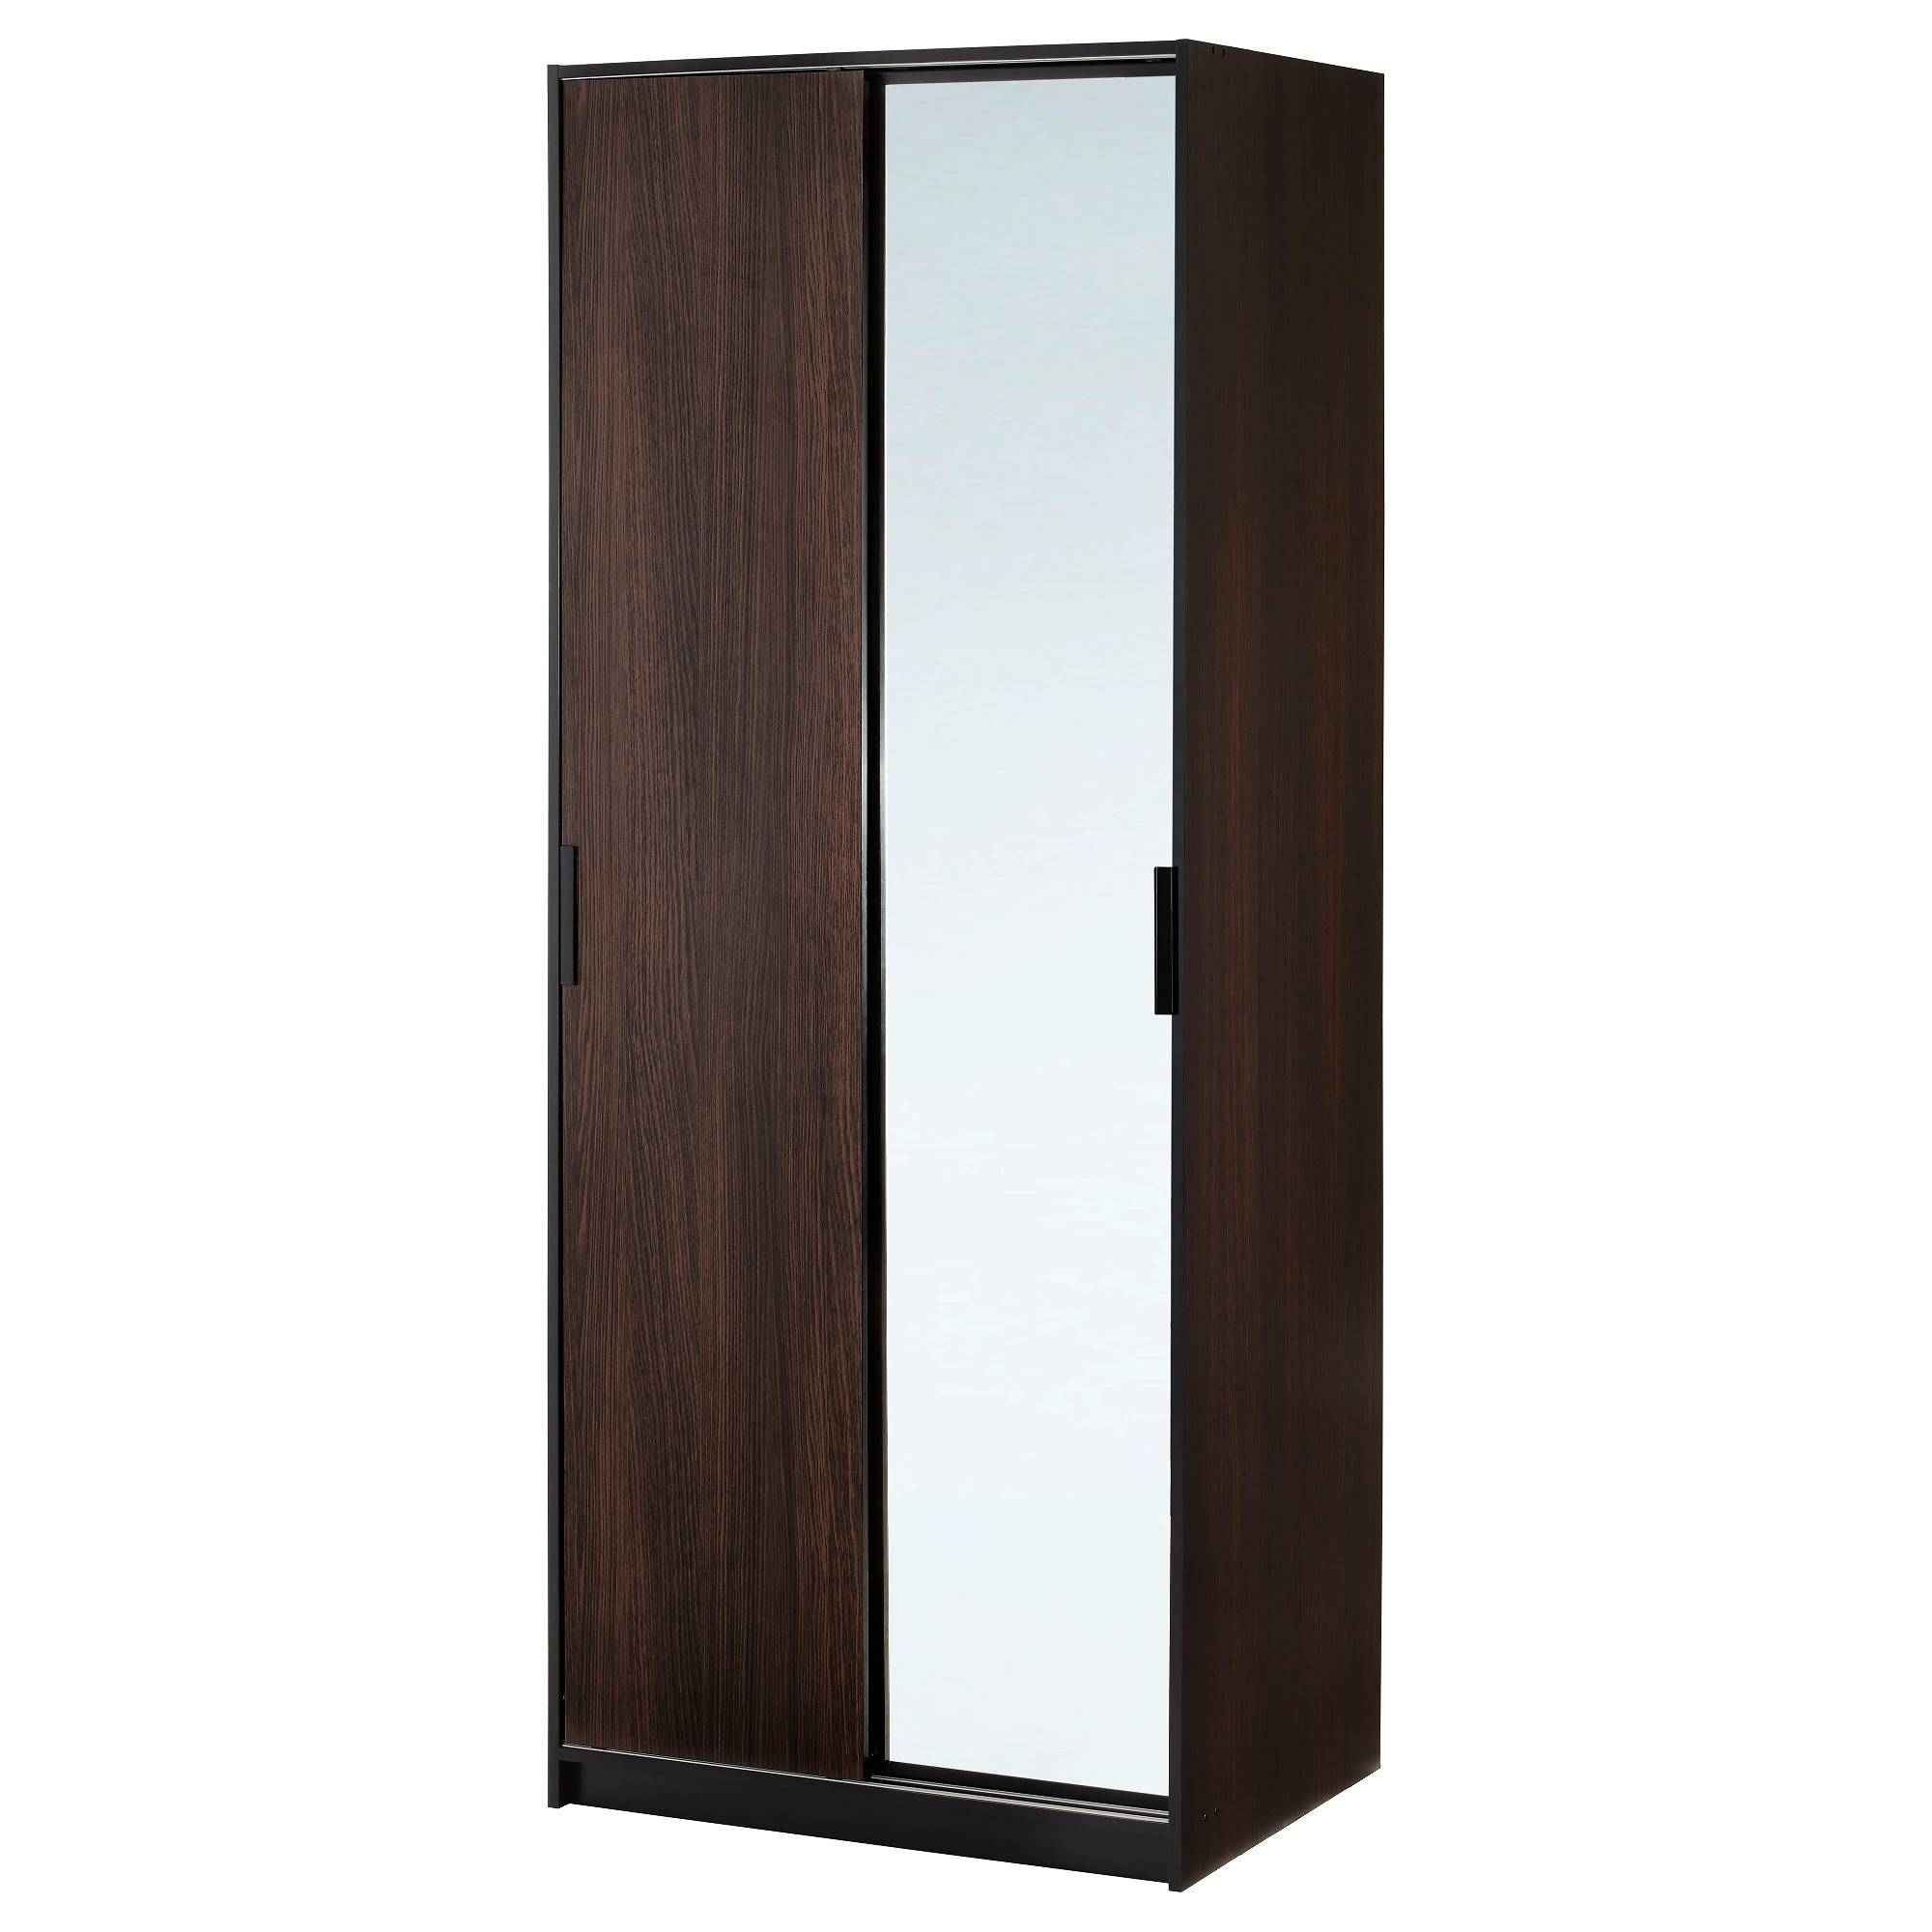 Wardrobes, Armoires & Closets - Ikea regarding One Door Wardrobes With Mirror (Image 15 of 15)